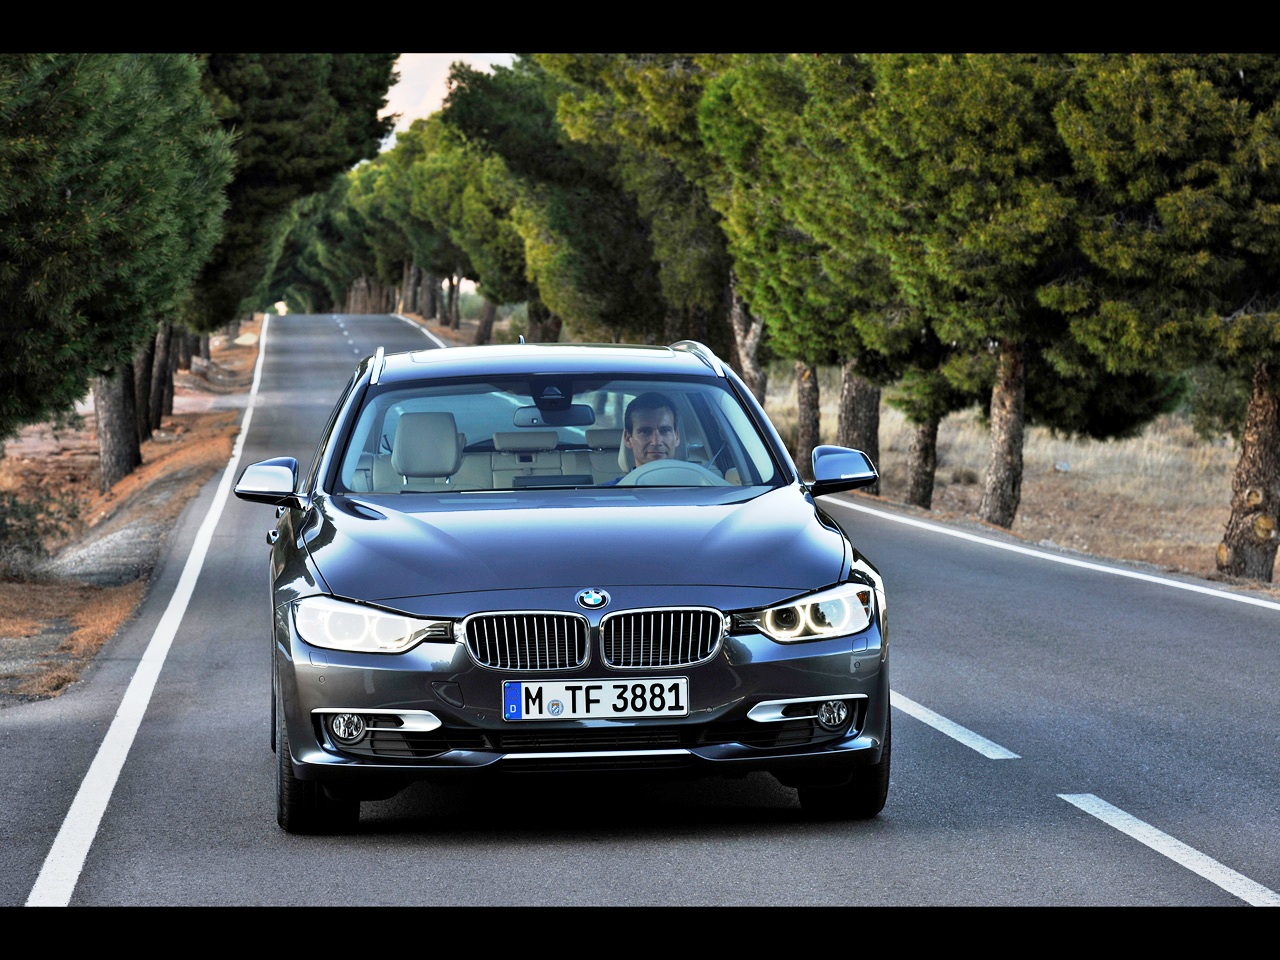 BMW 3 series 330d 2012 photo - 9